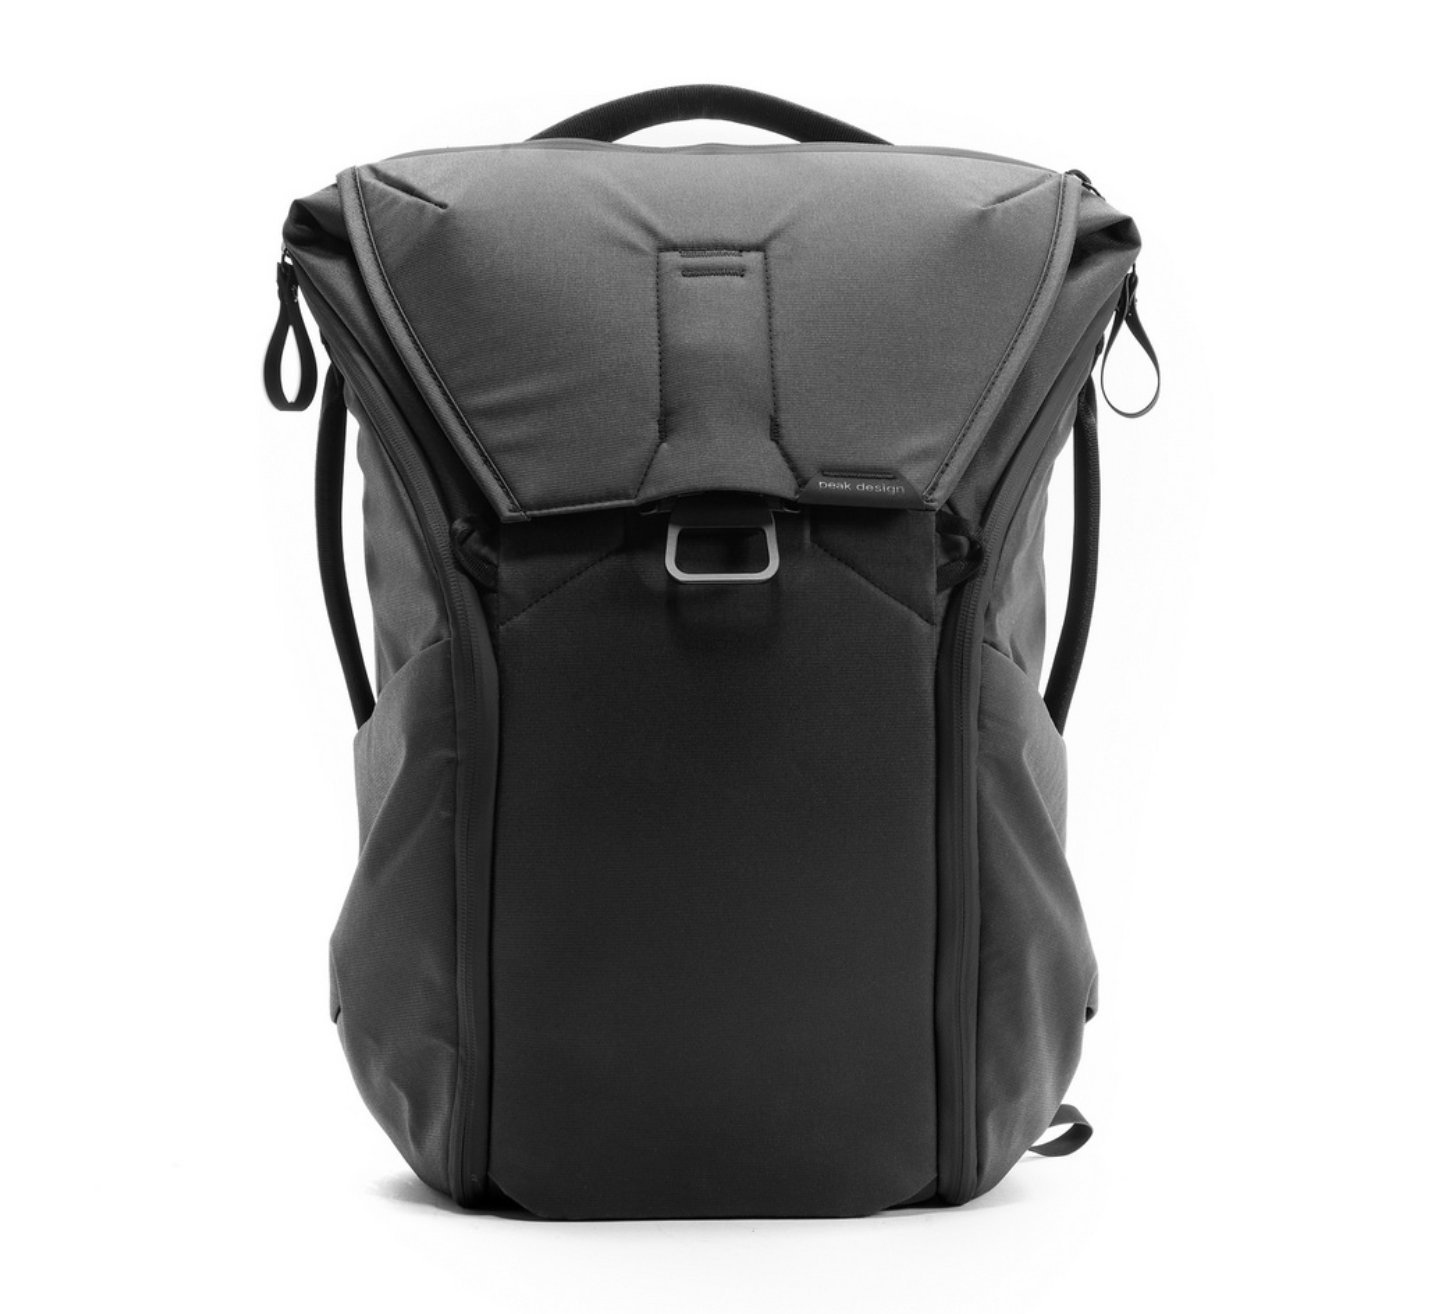 Peak Design Everyday Backpack 30L (Black Camera Bag) by Peak Design